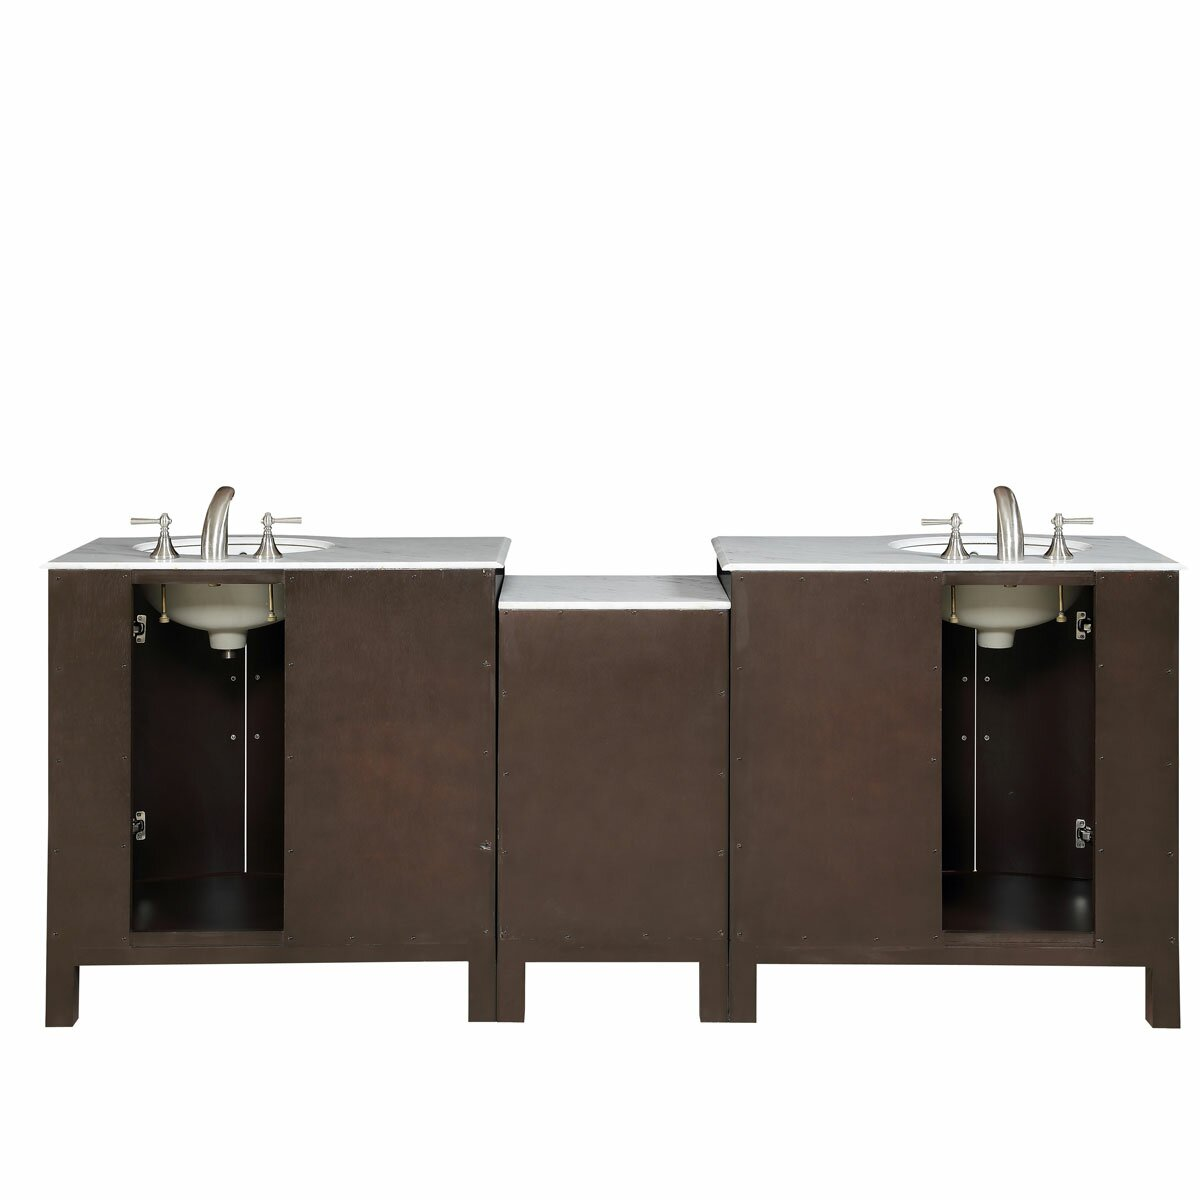 Silkroad Exclusive 89 Double Lavatory Sink Cabinet